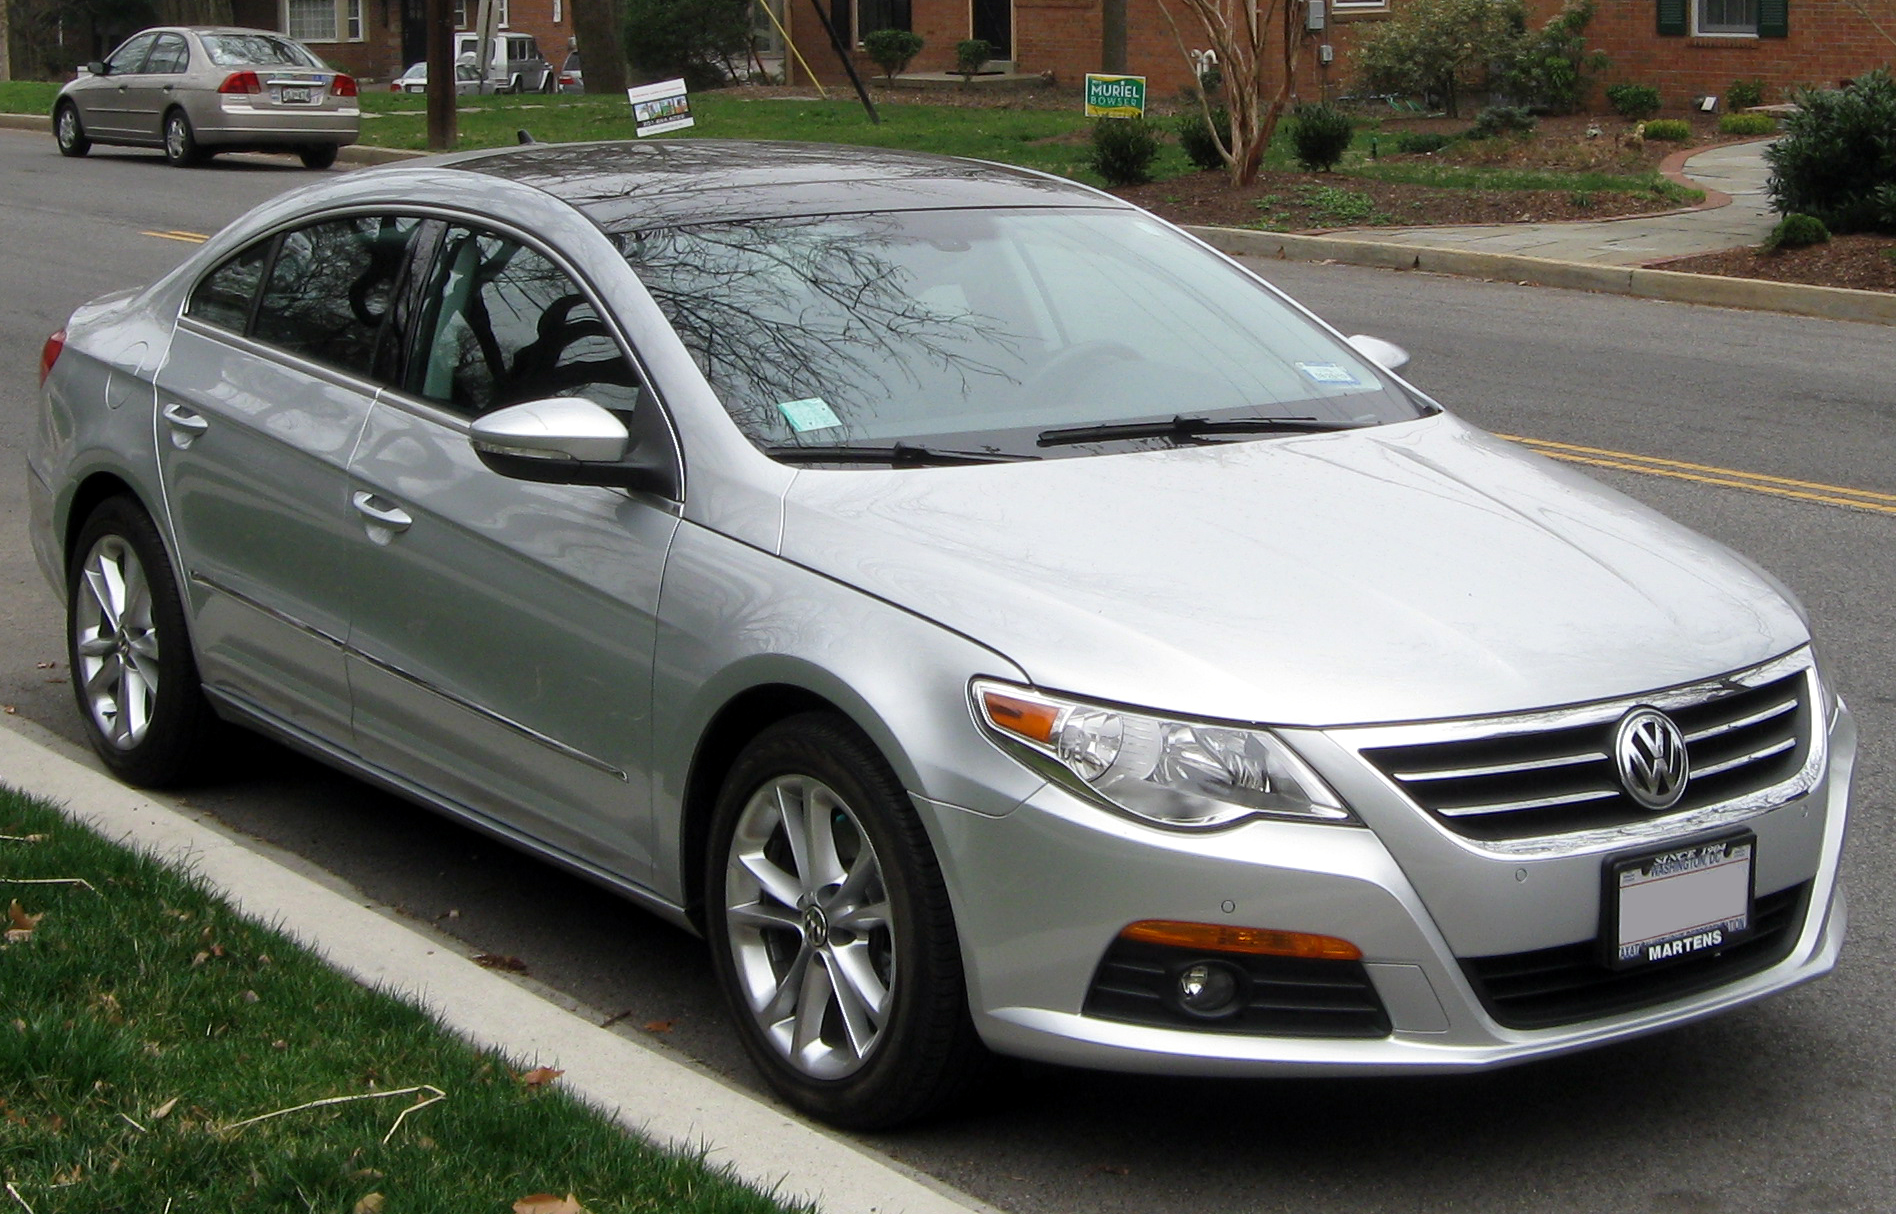 Volkswagen CC - Wikipedia, the free encyclopedia